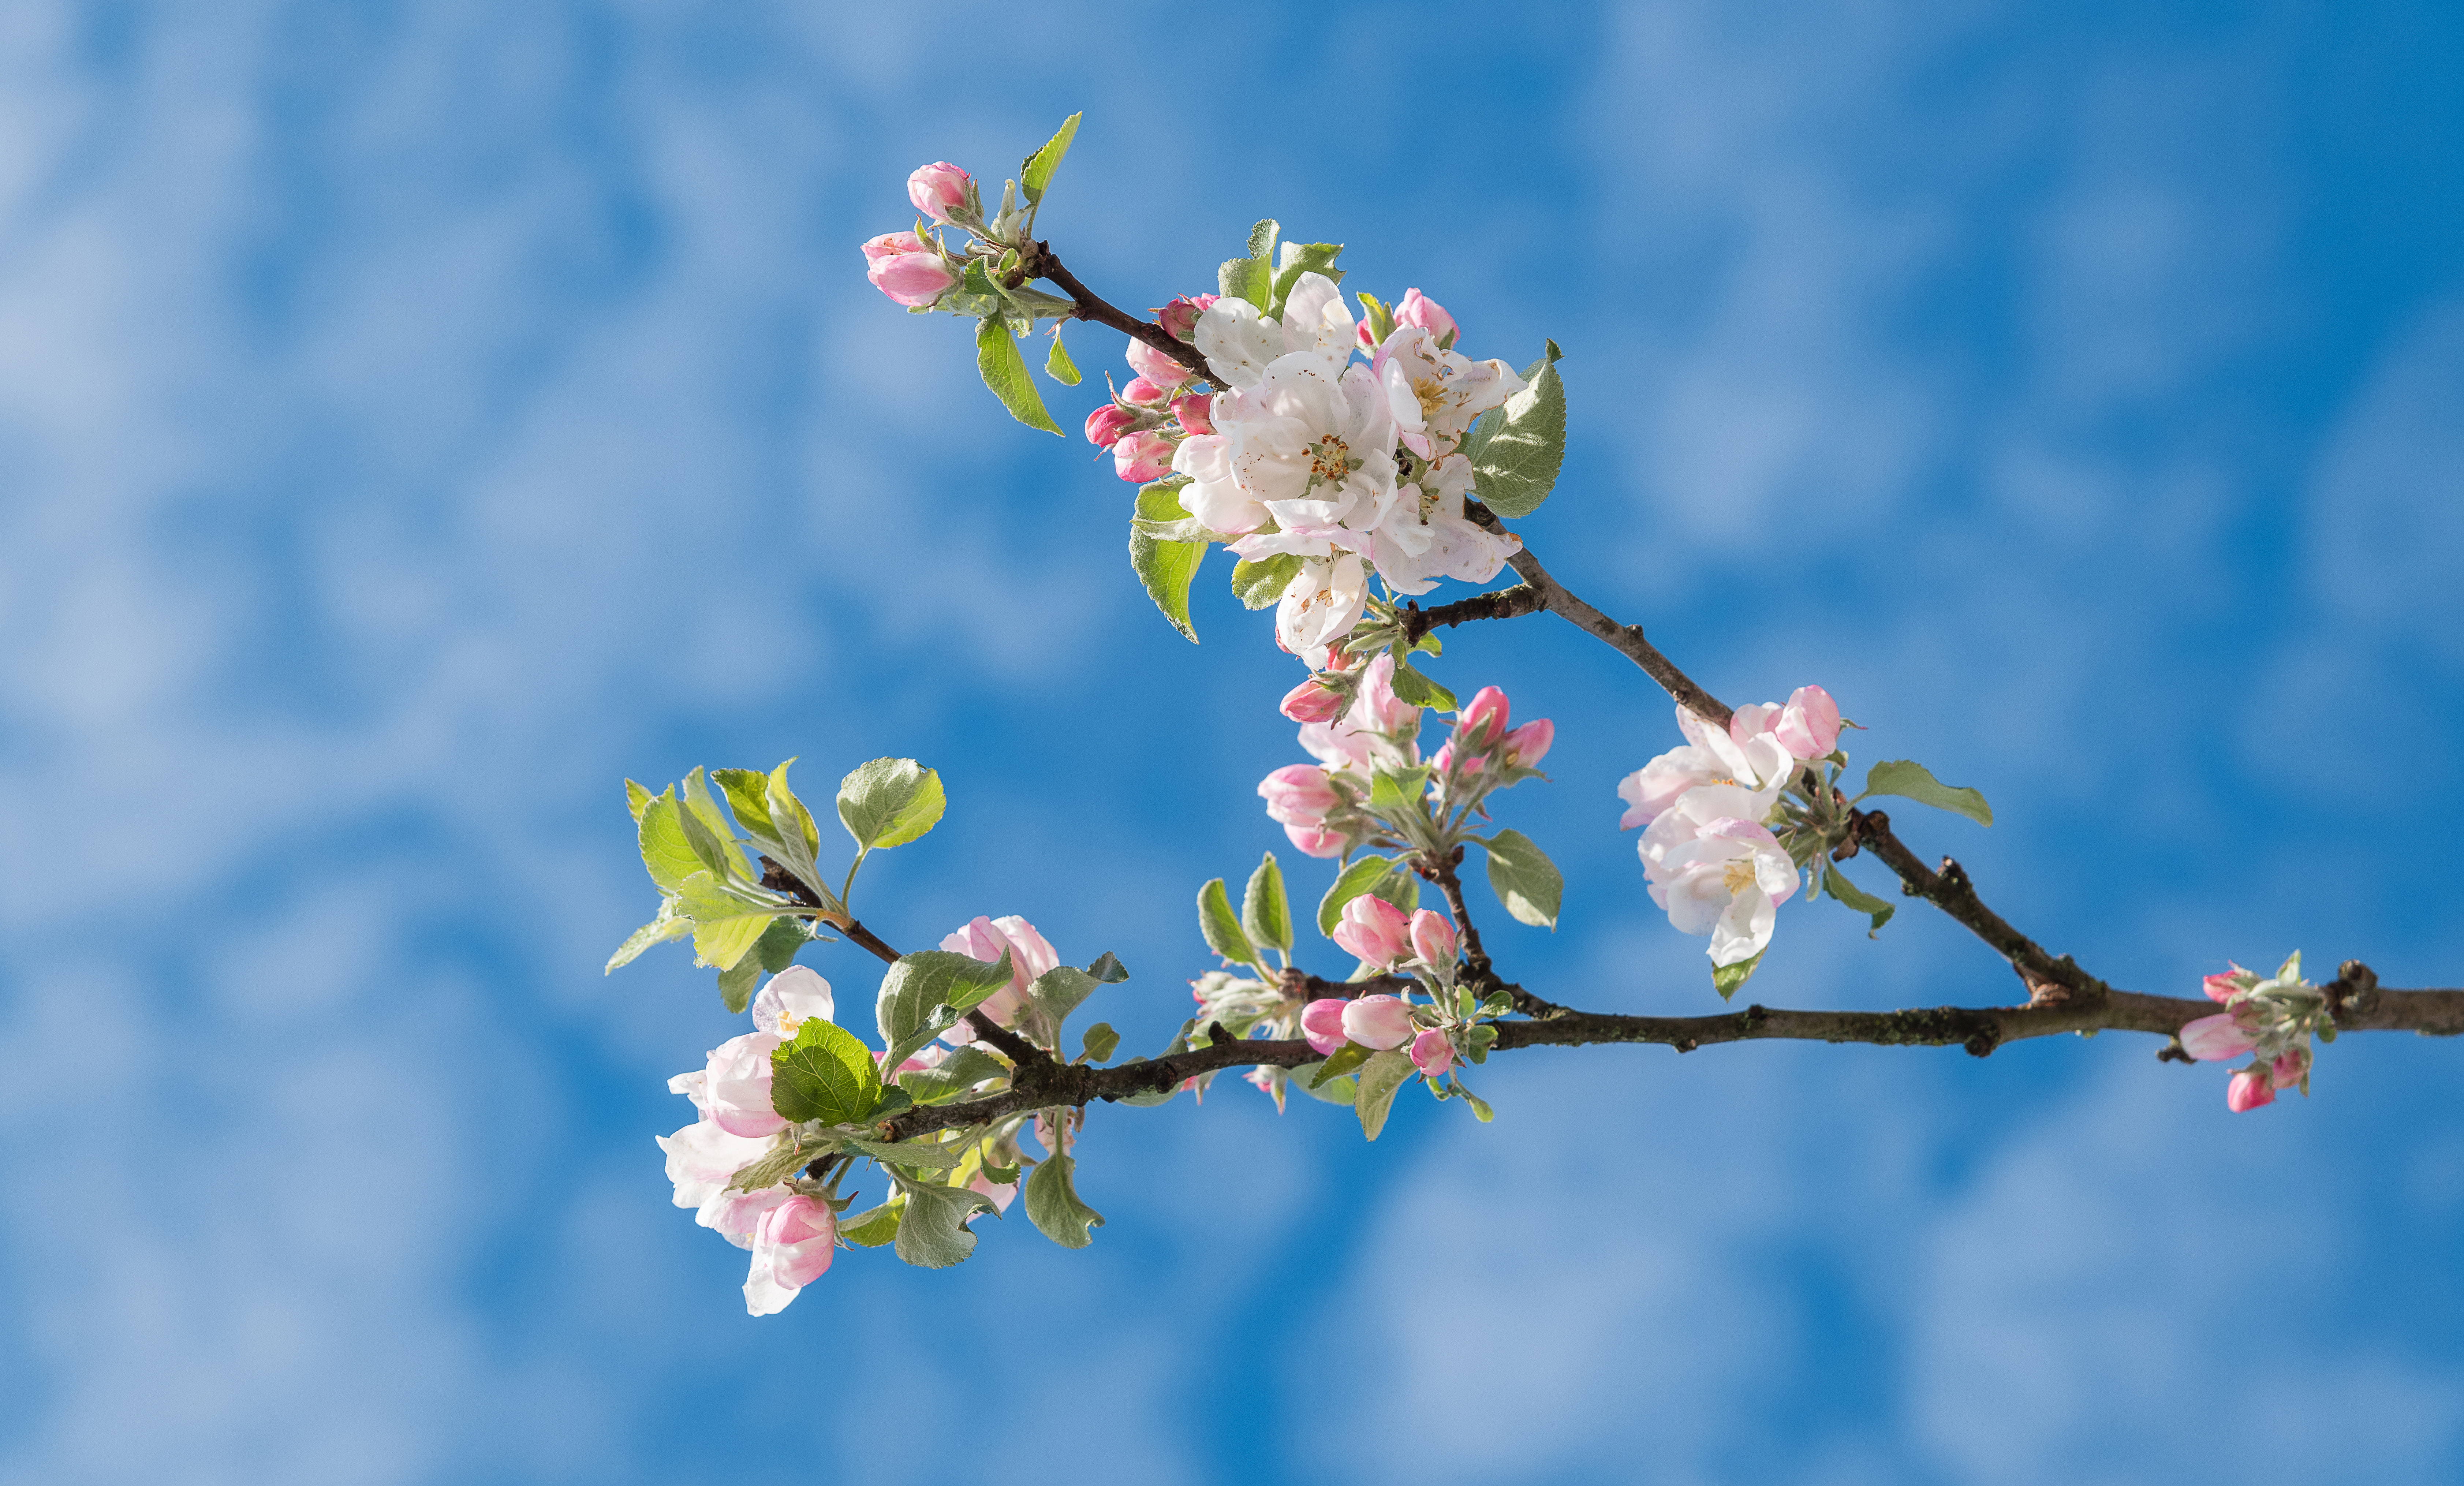 cherry tree hindu dating site Times of india brings the latest news & top breaking headlines on politics and current affairs in india & around the world, sports, business, bollywood news and entertainment, science, technology .